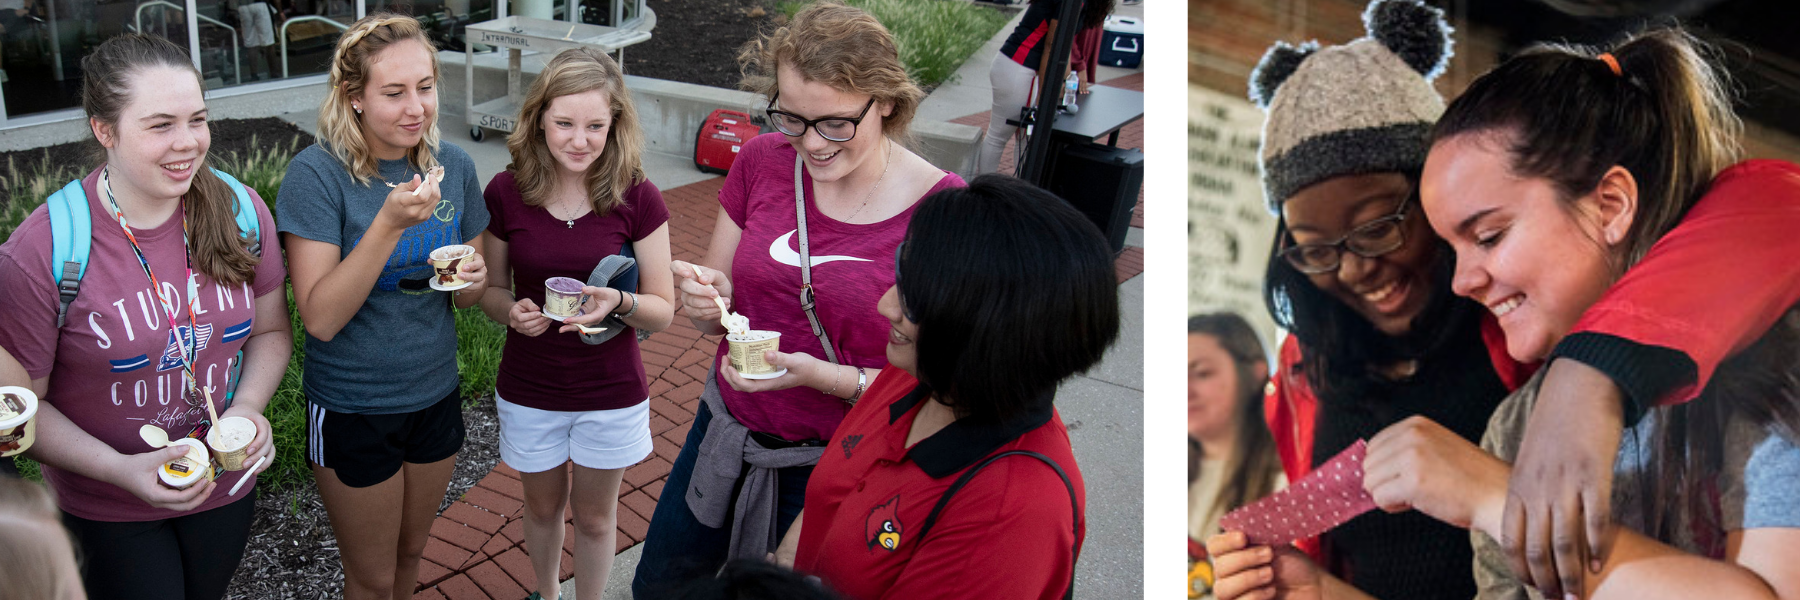 photo of students smiling eating ice cream with president of university